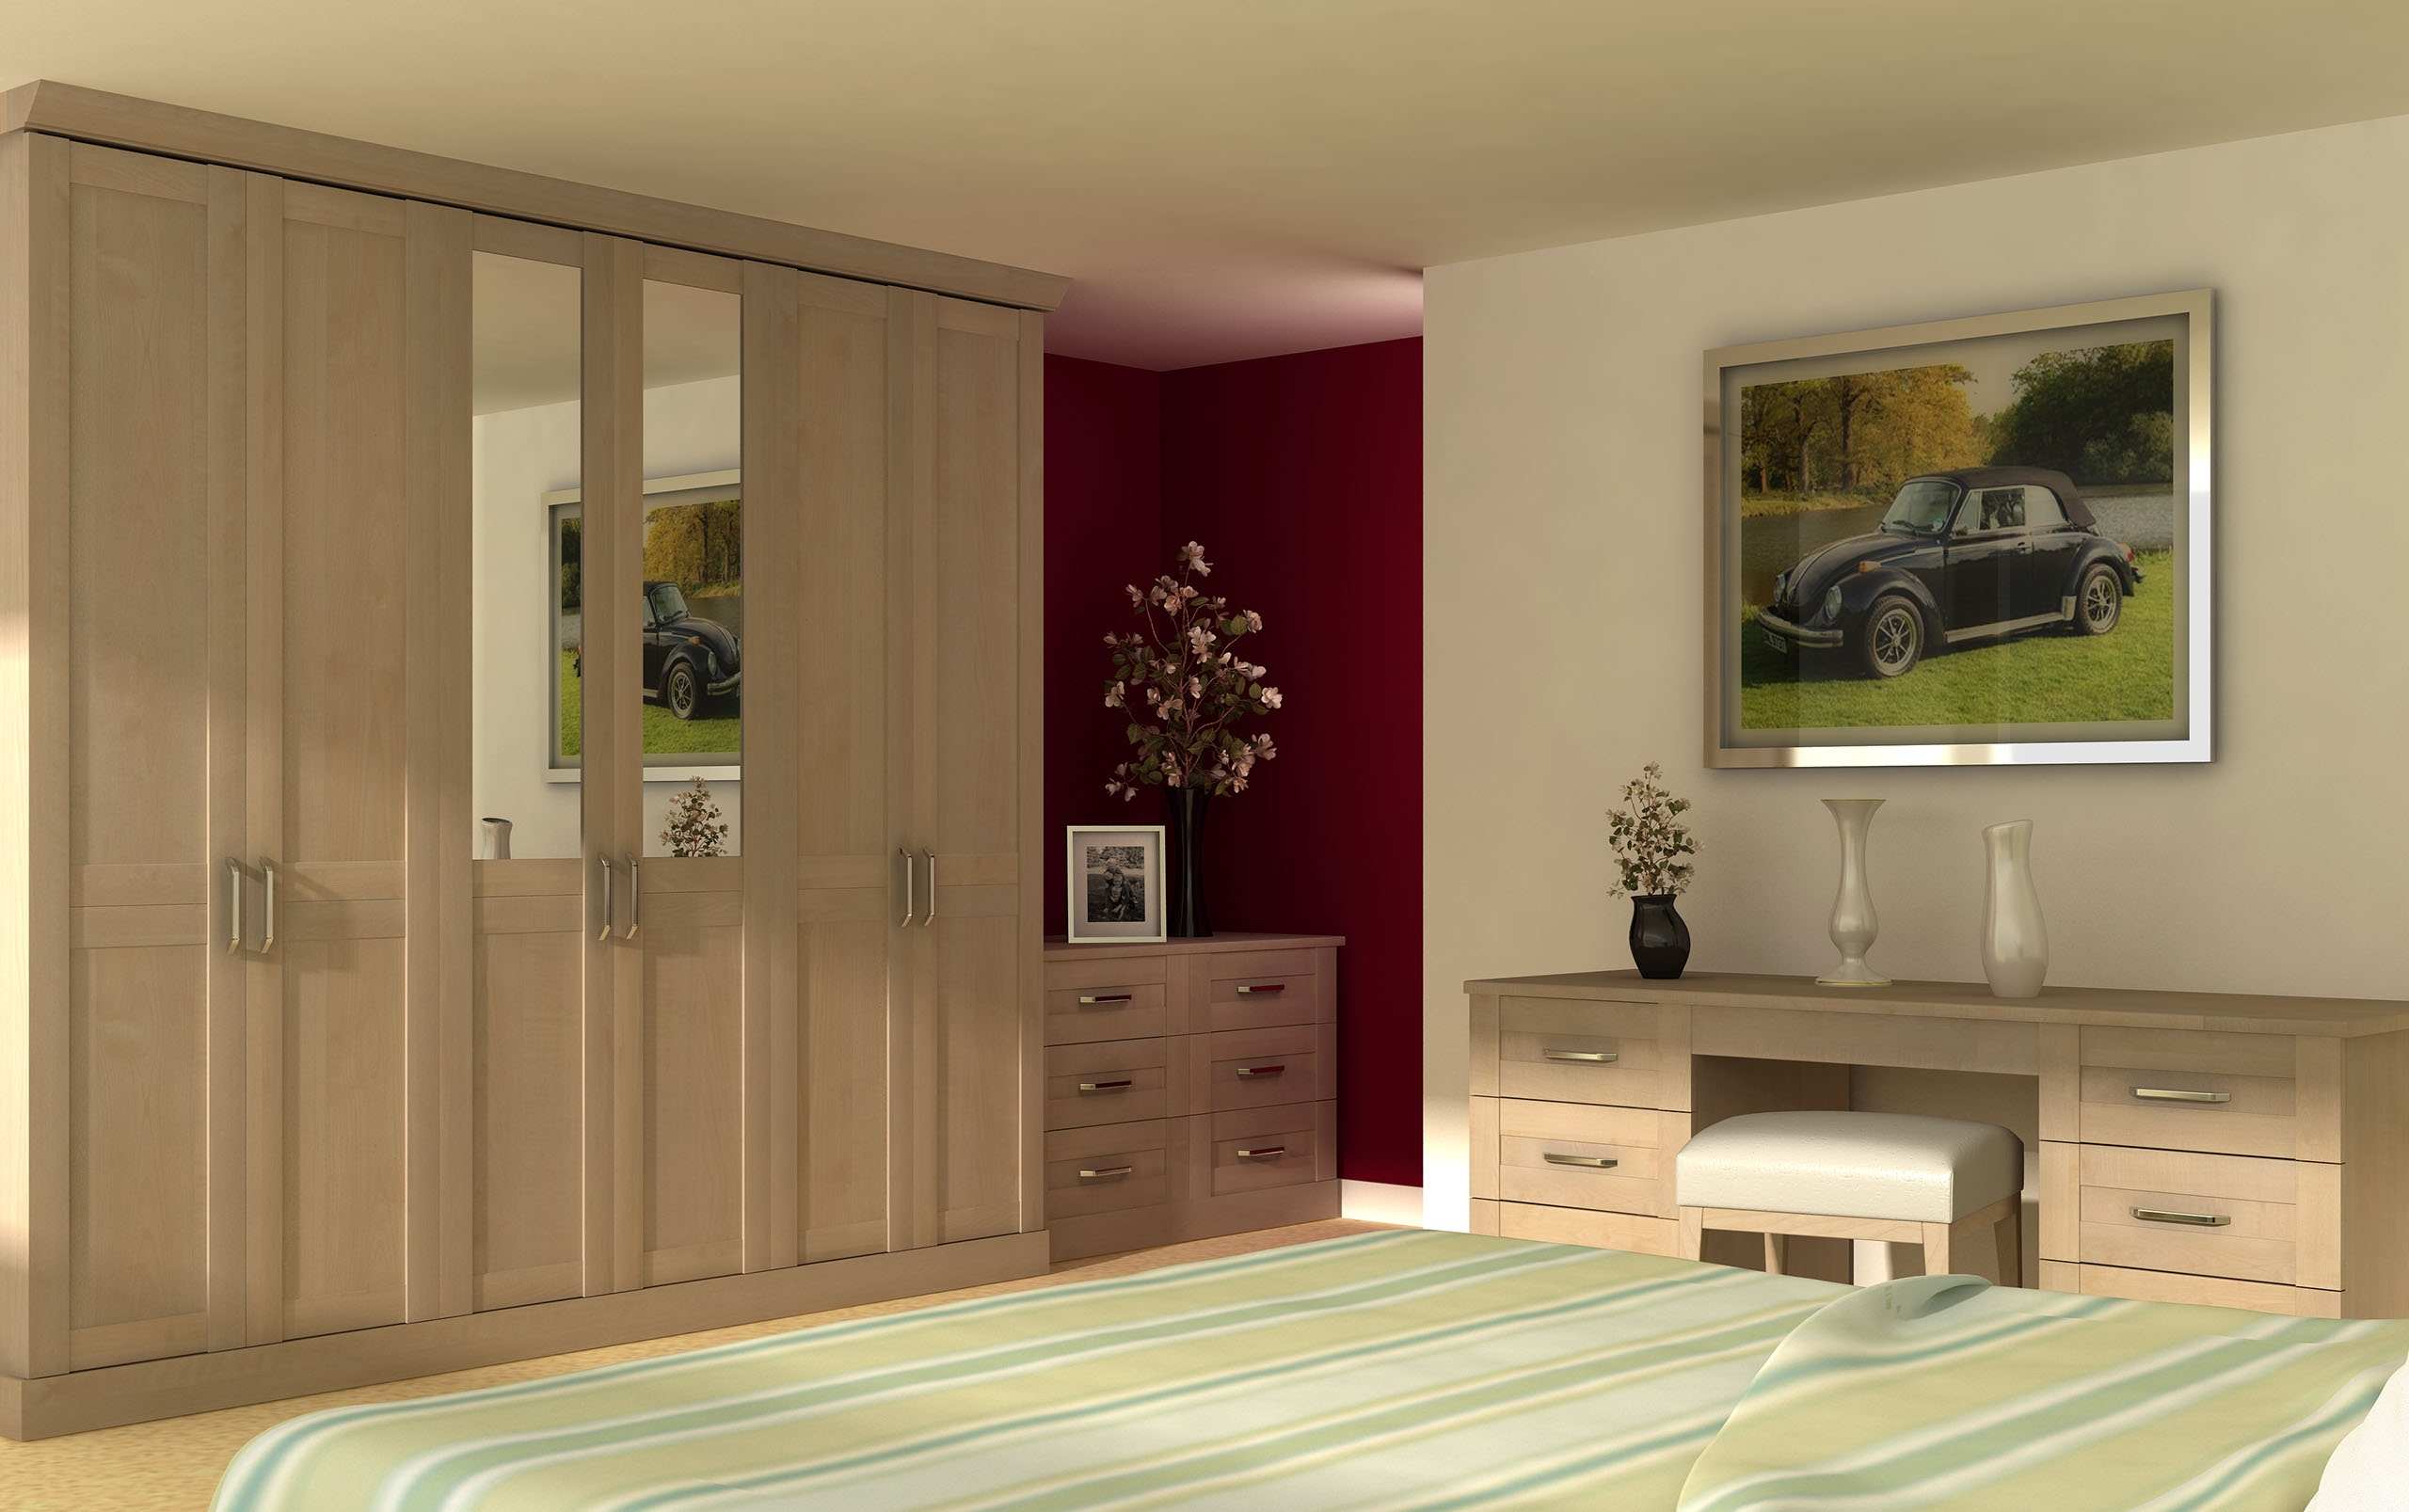 Fitted Sliding Wardrobes Excellent Mirrored Fitted Wardrobes Inside Solid Wood Built In Wardrobes (View 8 of 15)